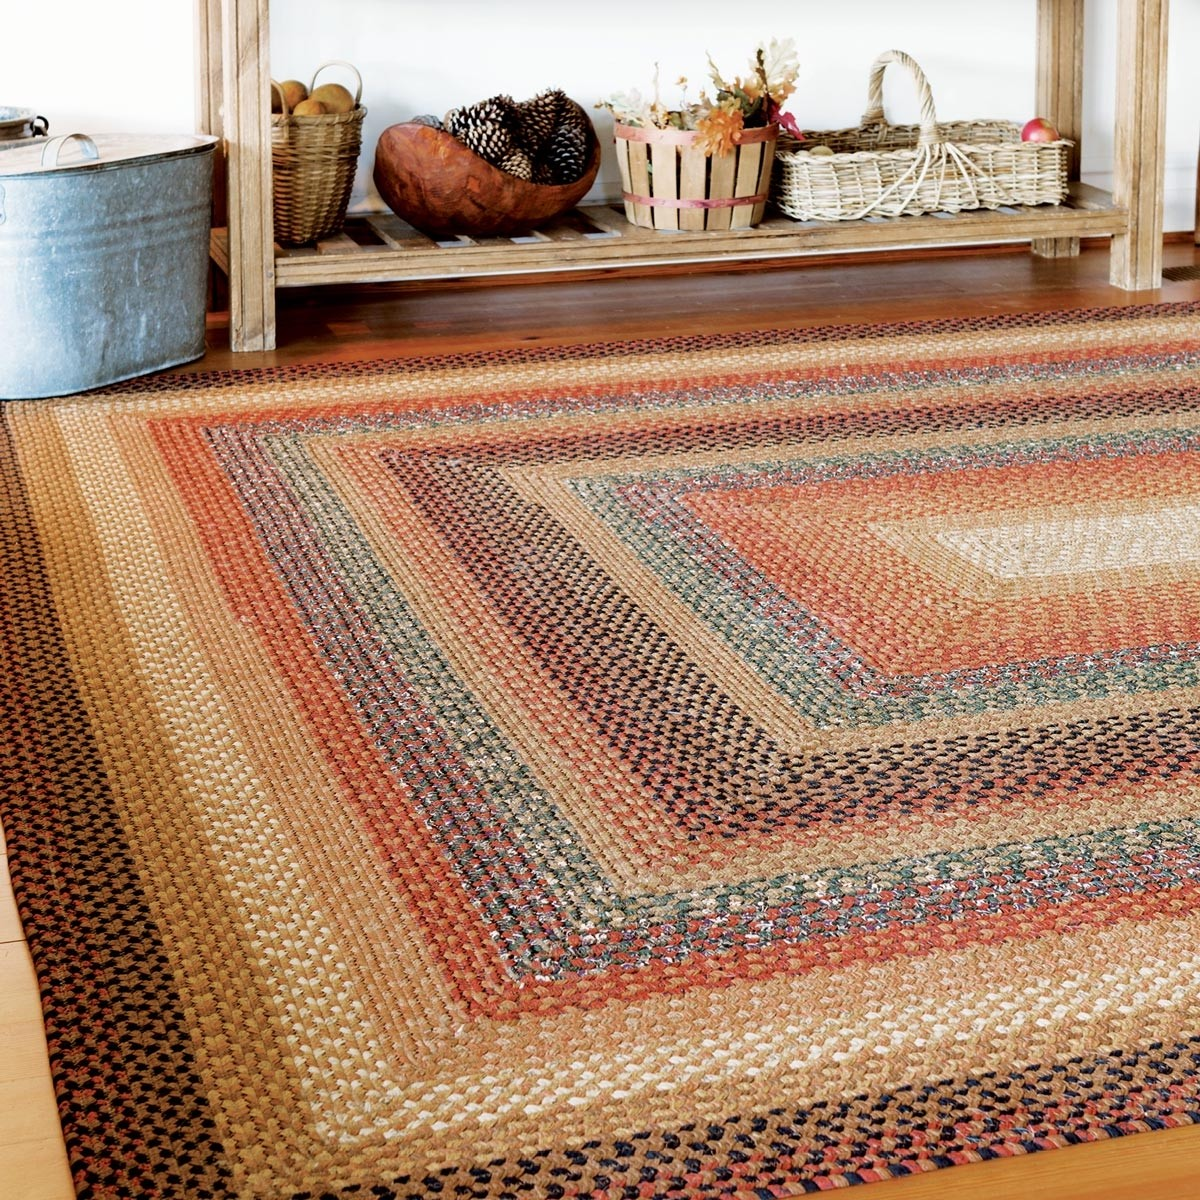 Braided Rug For Living Room: Buy Peppercorn Multi Color Cotton Braided Rugs Online